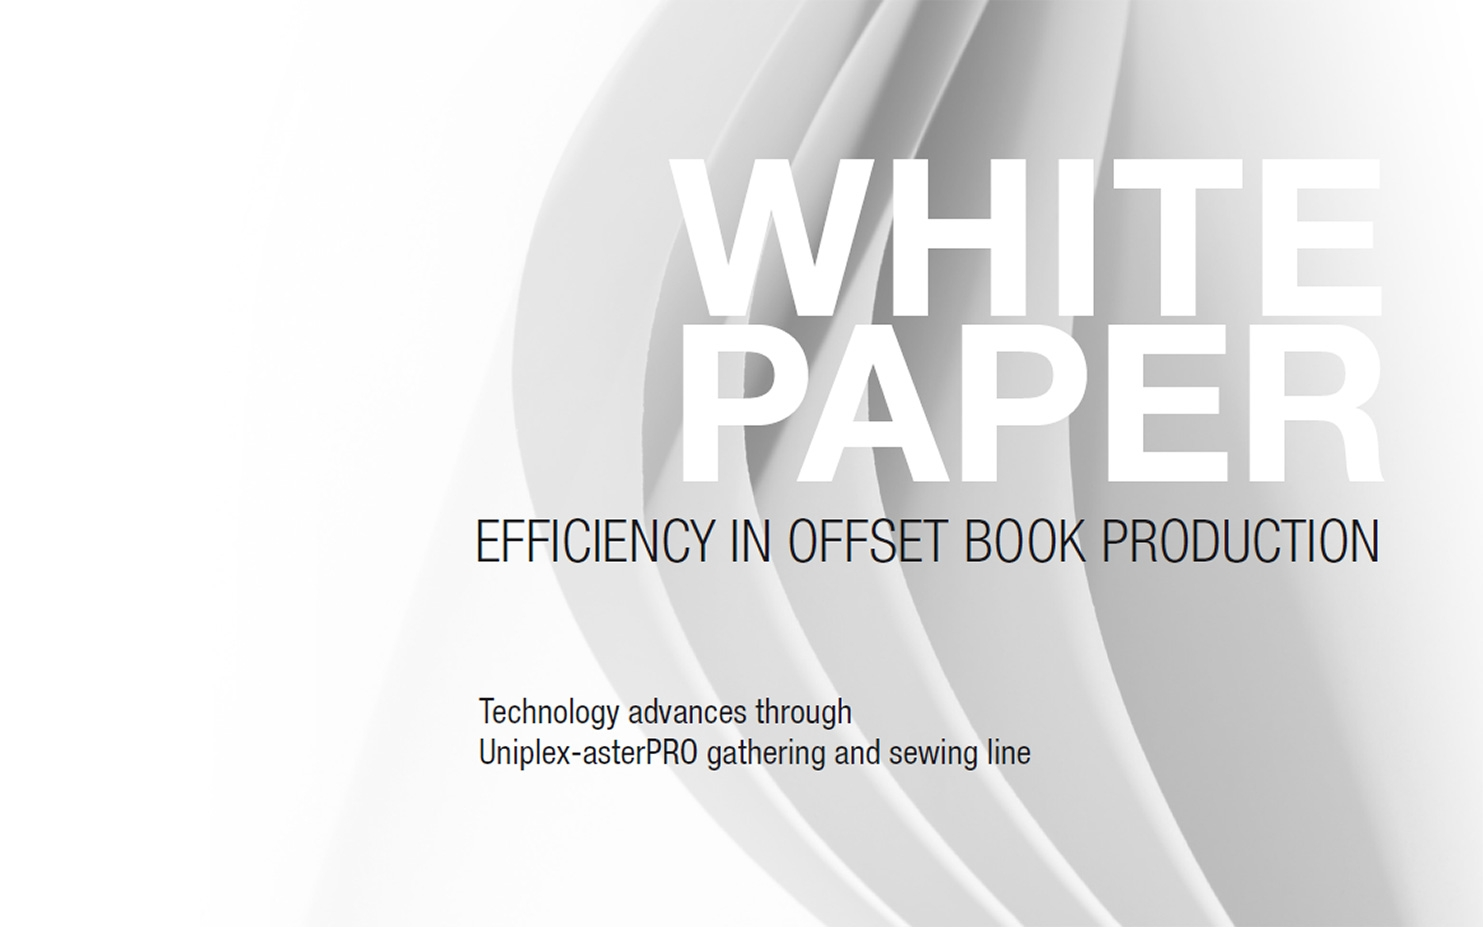 Efficiency in offset book production